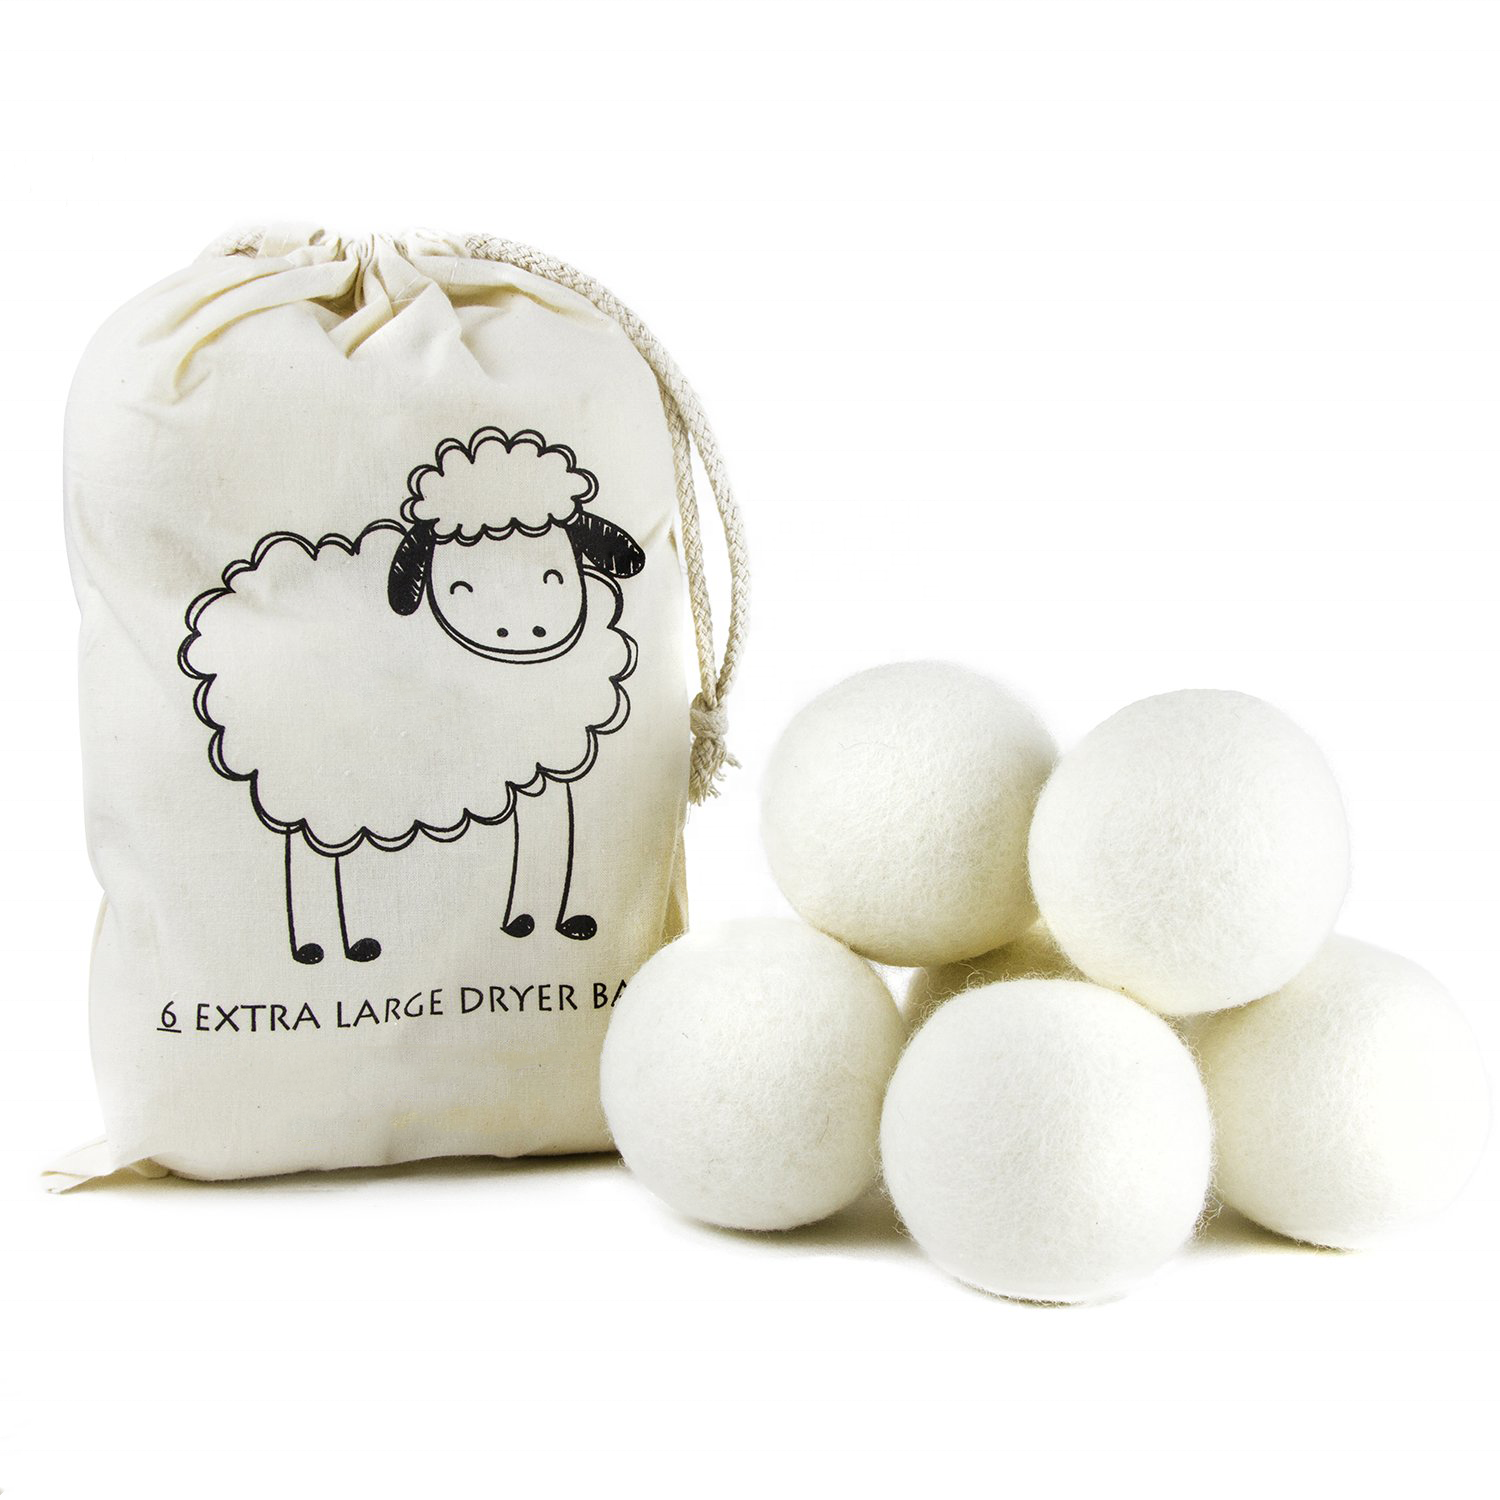 6-Pack XL 100% New Zealand Wool Dryer Balls with FBA DDP service